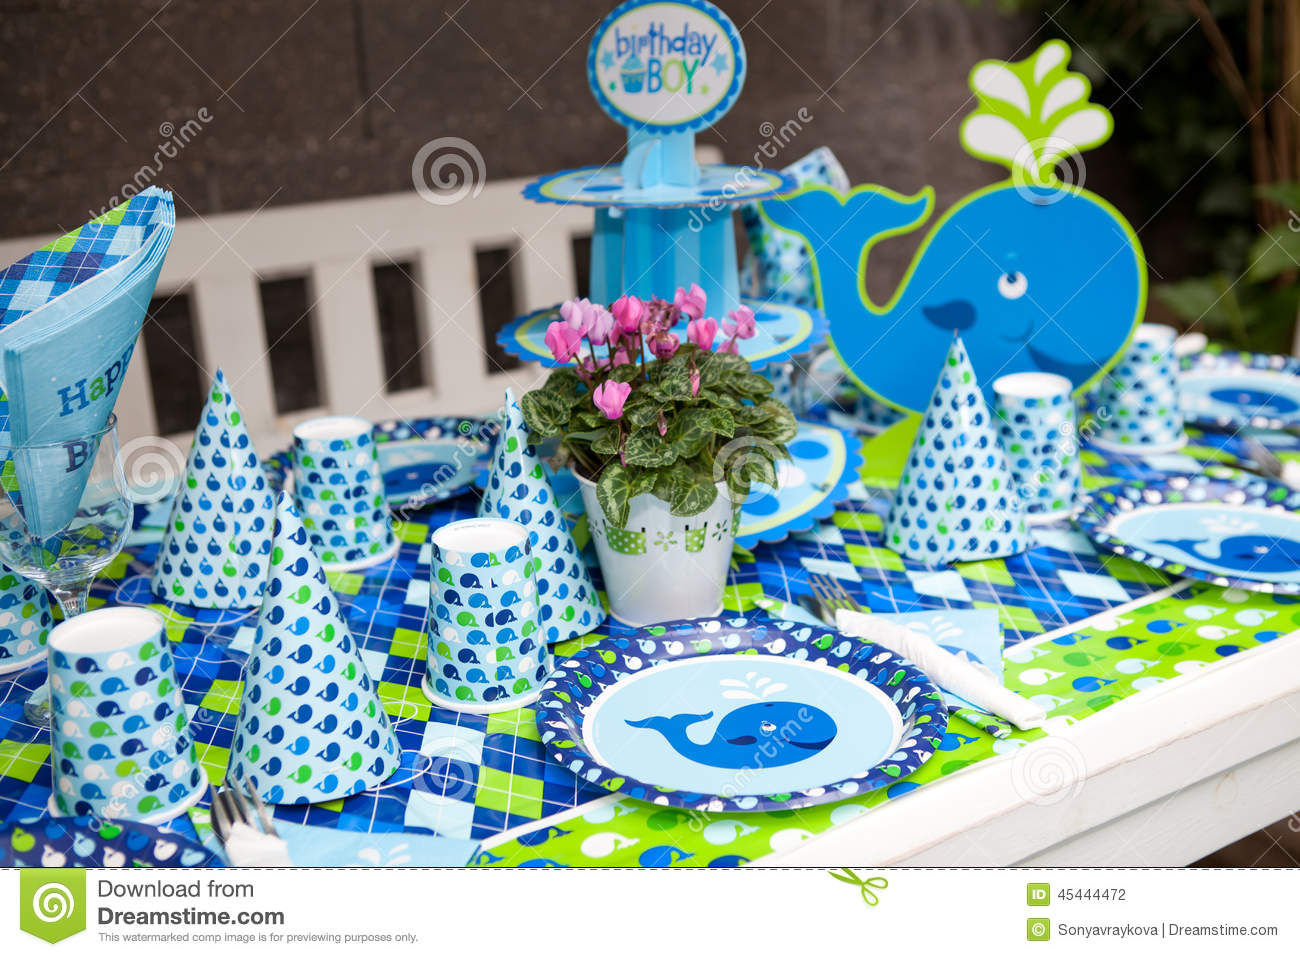 Birthday table decorations boy - Baby Birthday Boy First Marine Outdoor Party Set Table Theme